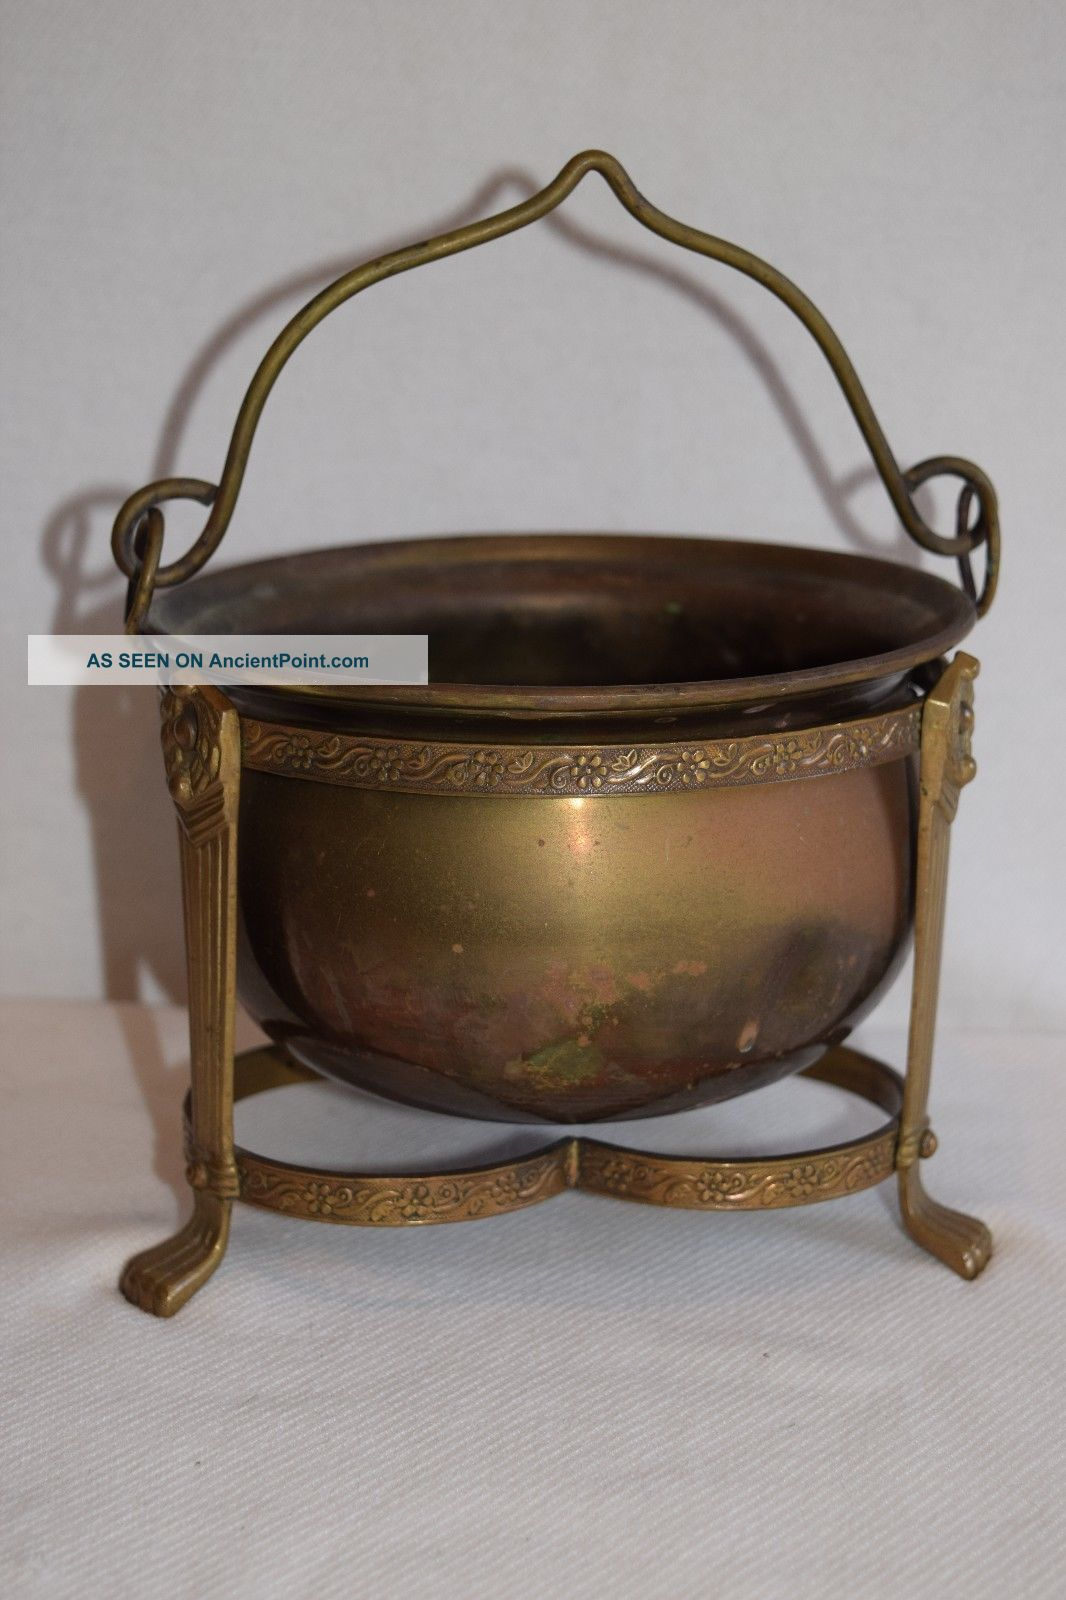 Brass Or Copper Caldron On A Ornate Stand With Handle Made In India Hearth Ware photo